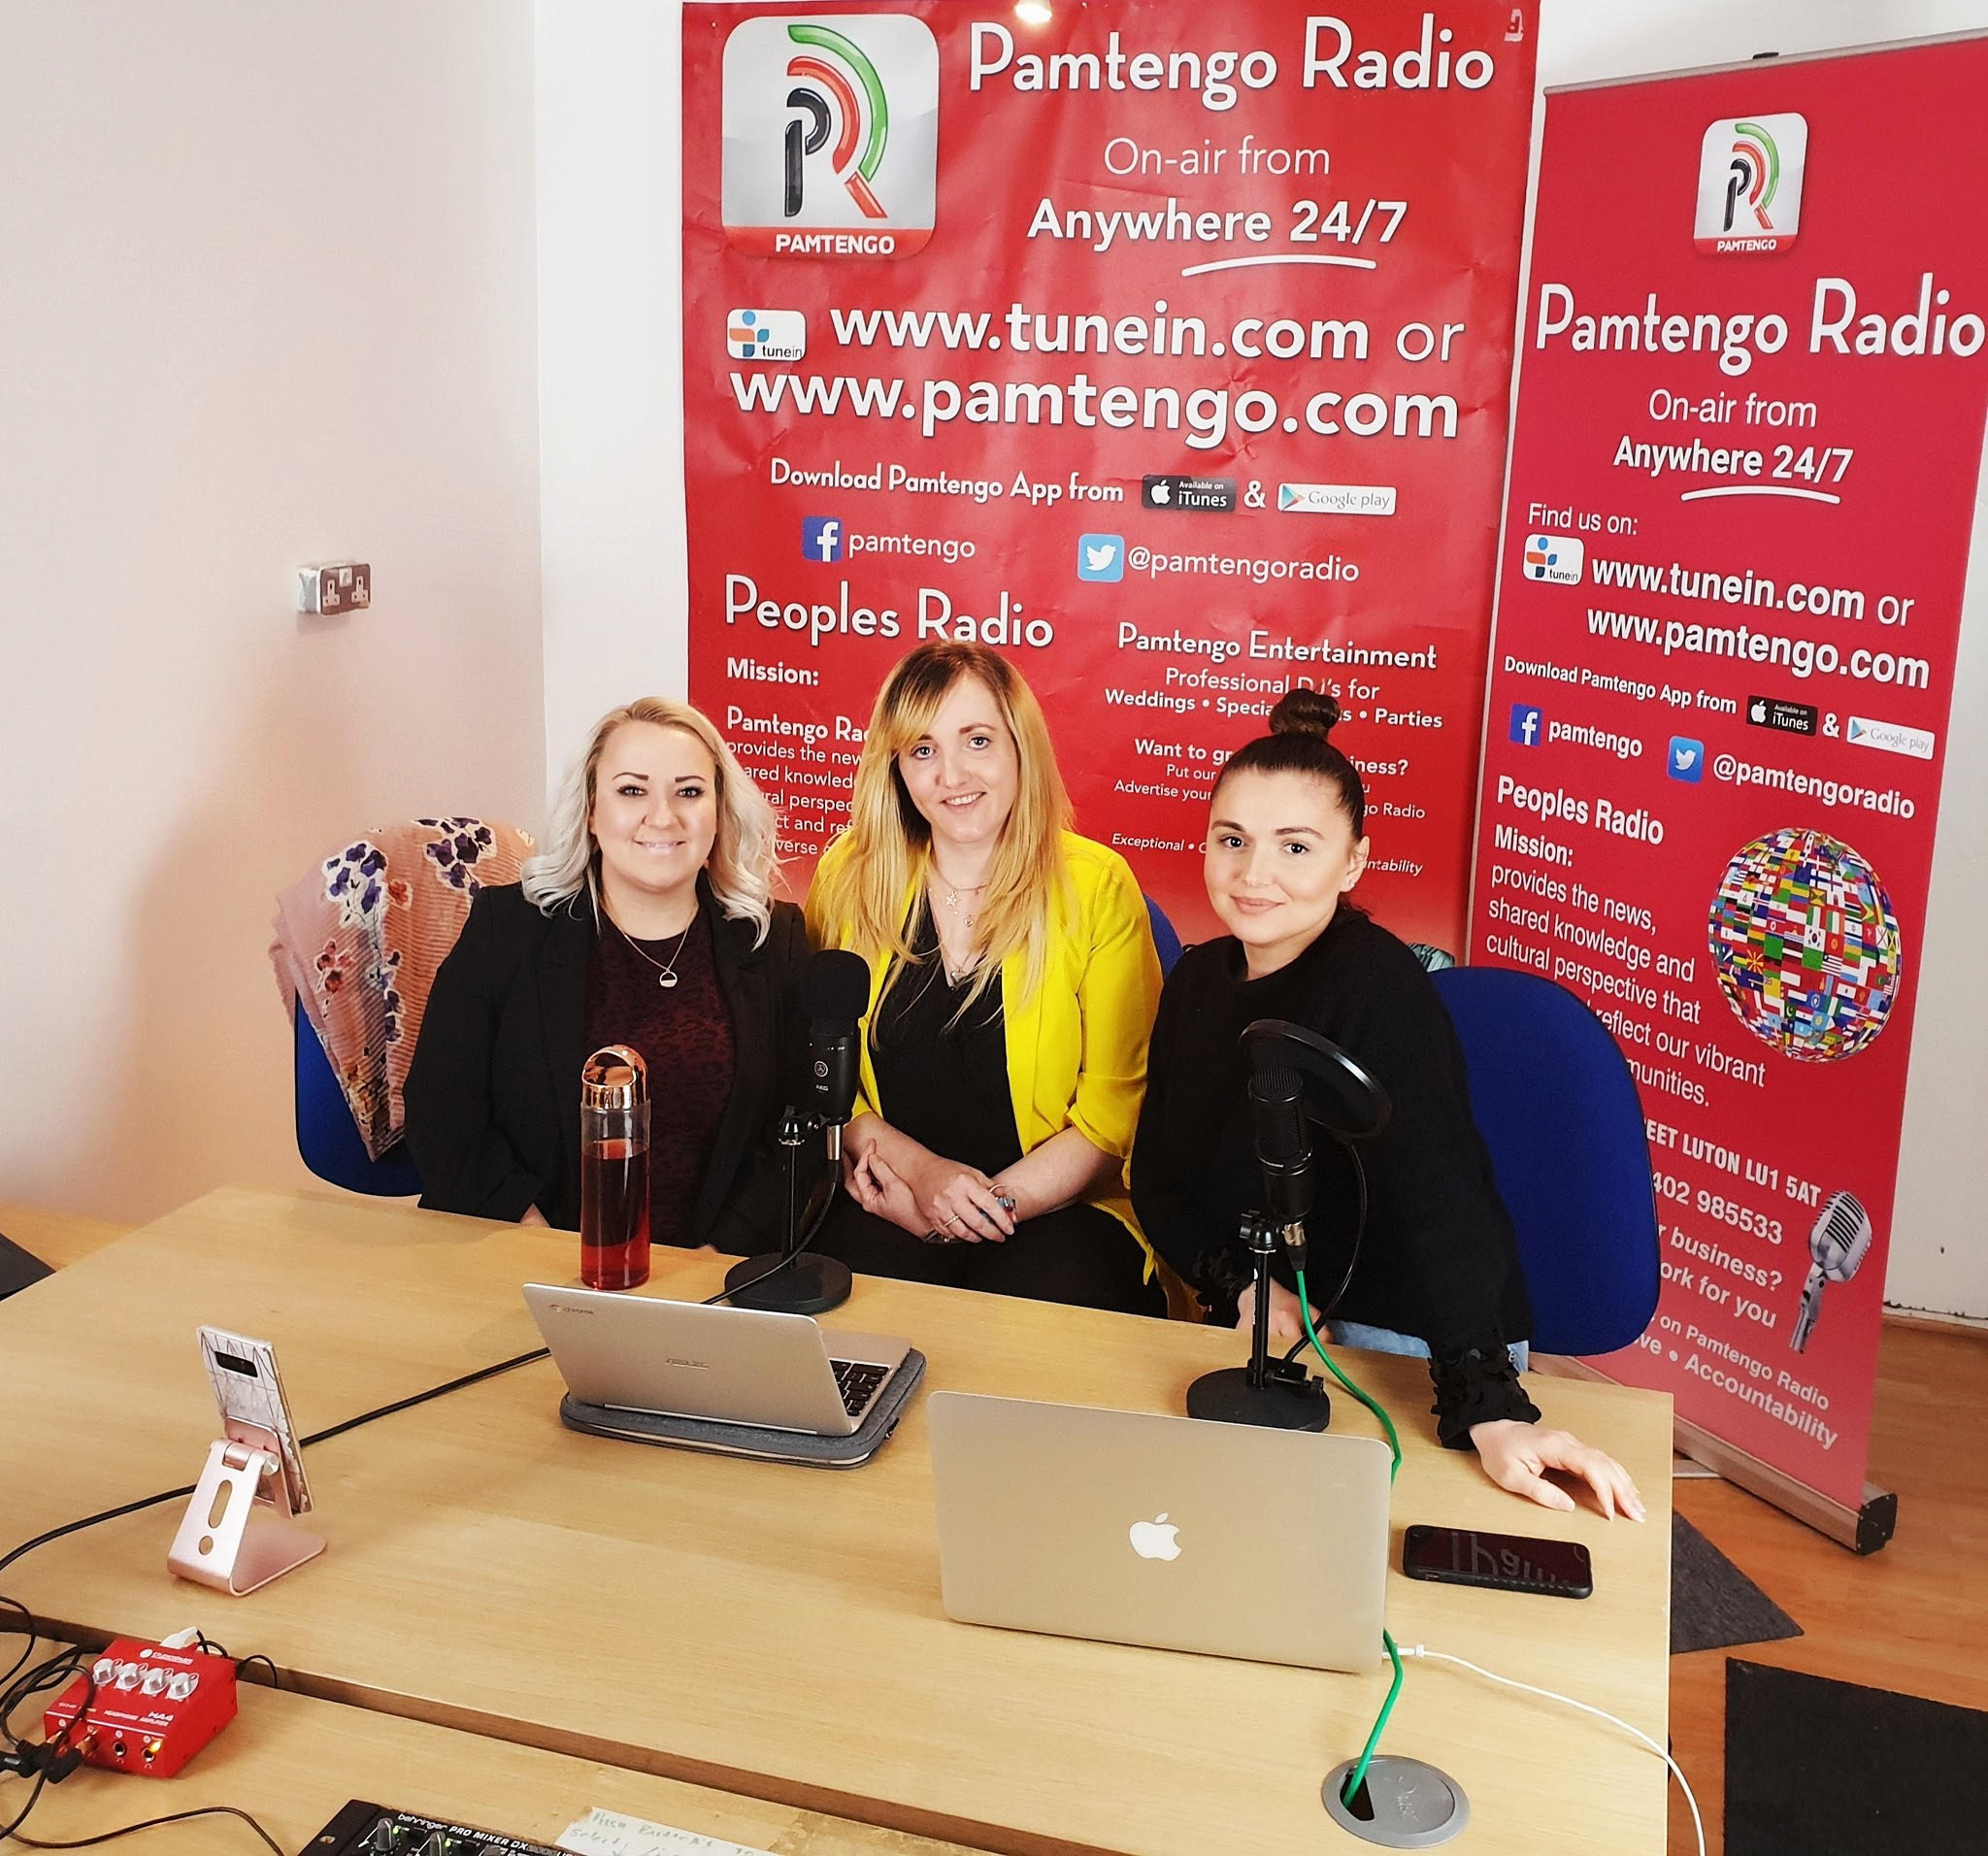 Community Radio Show - Meaningful Talk, the Health and Wellbeing show with Clare and Rigerta, every 2 weeks on Pamtengo Radio. Our next show will be on Monday 21st October 2019 from 6-7.30pm. We will be live on Facebook and Twitter, please search @MeaningfulEd to access the live feed.